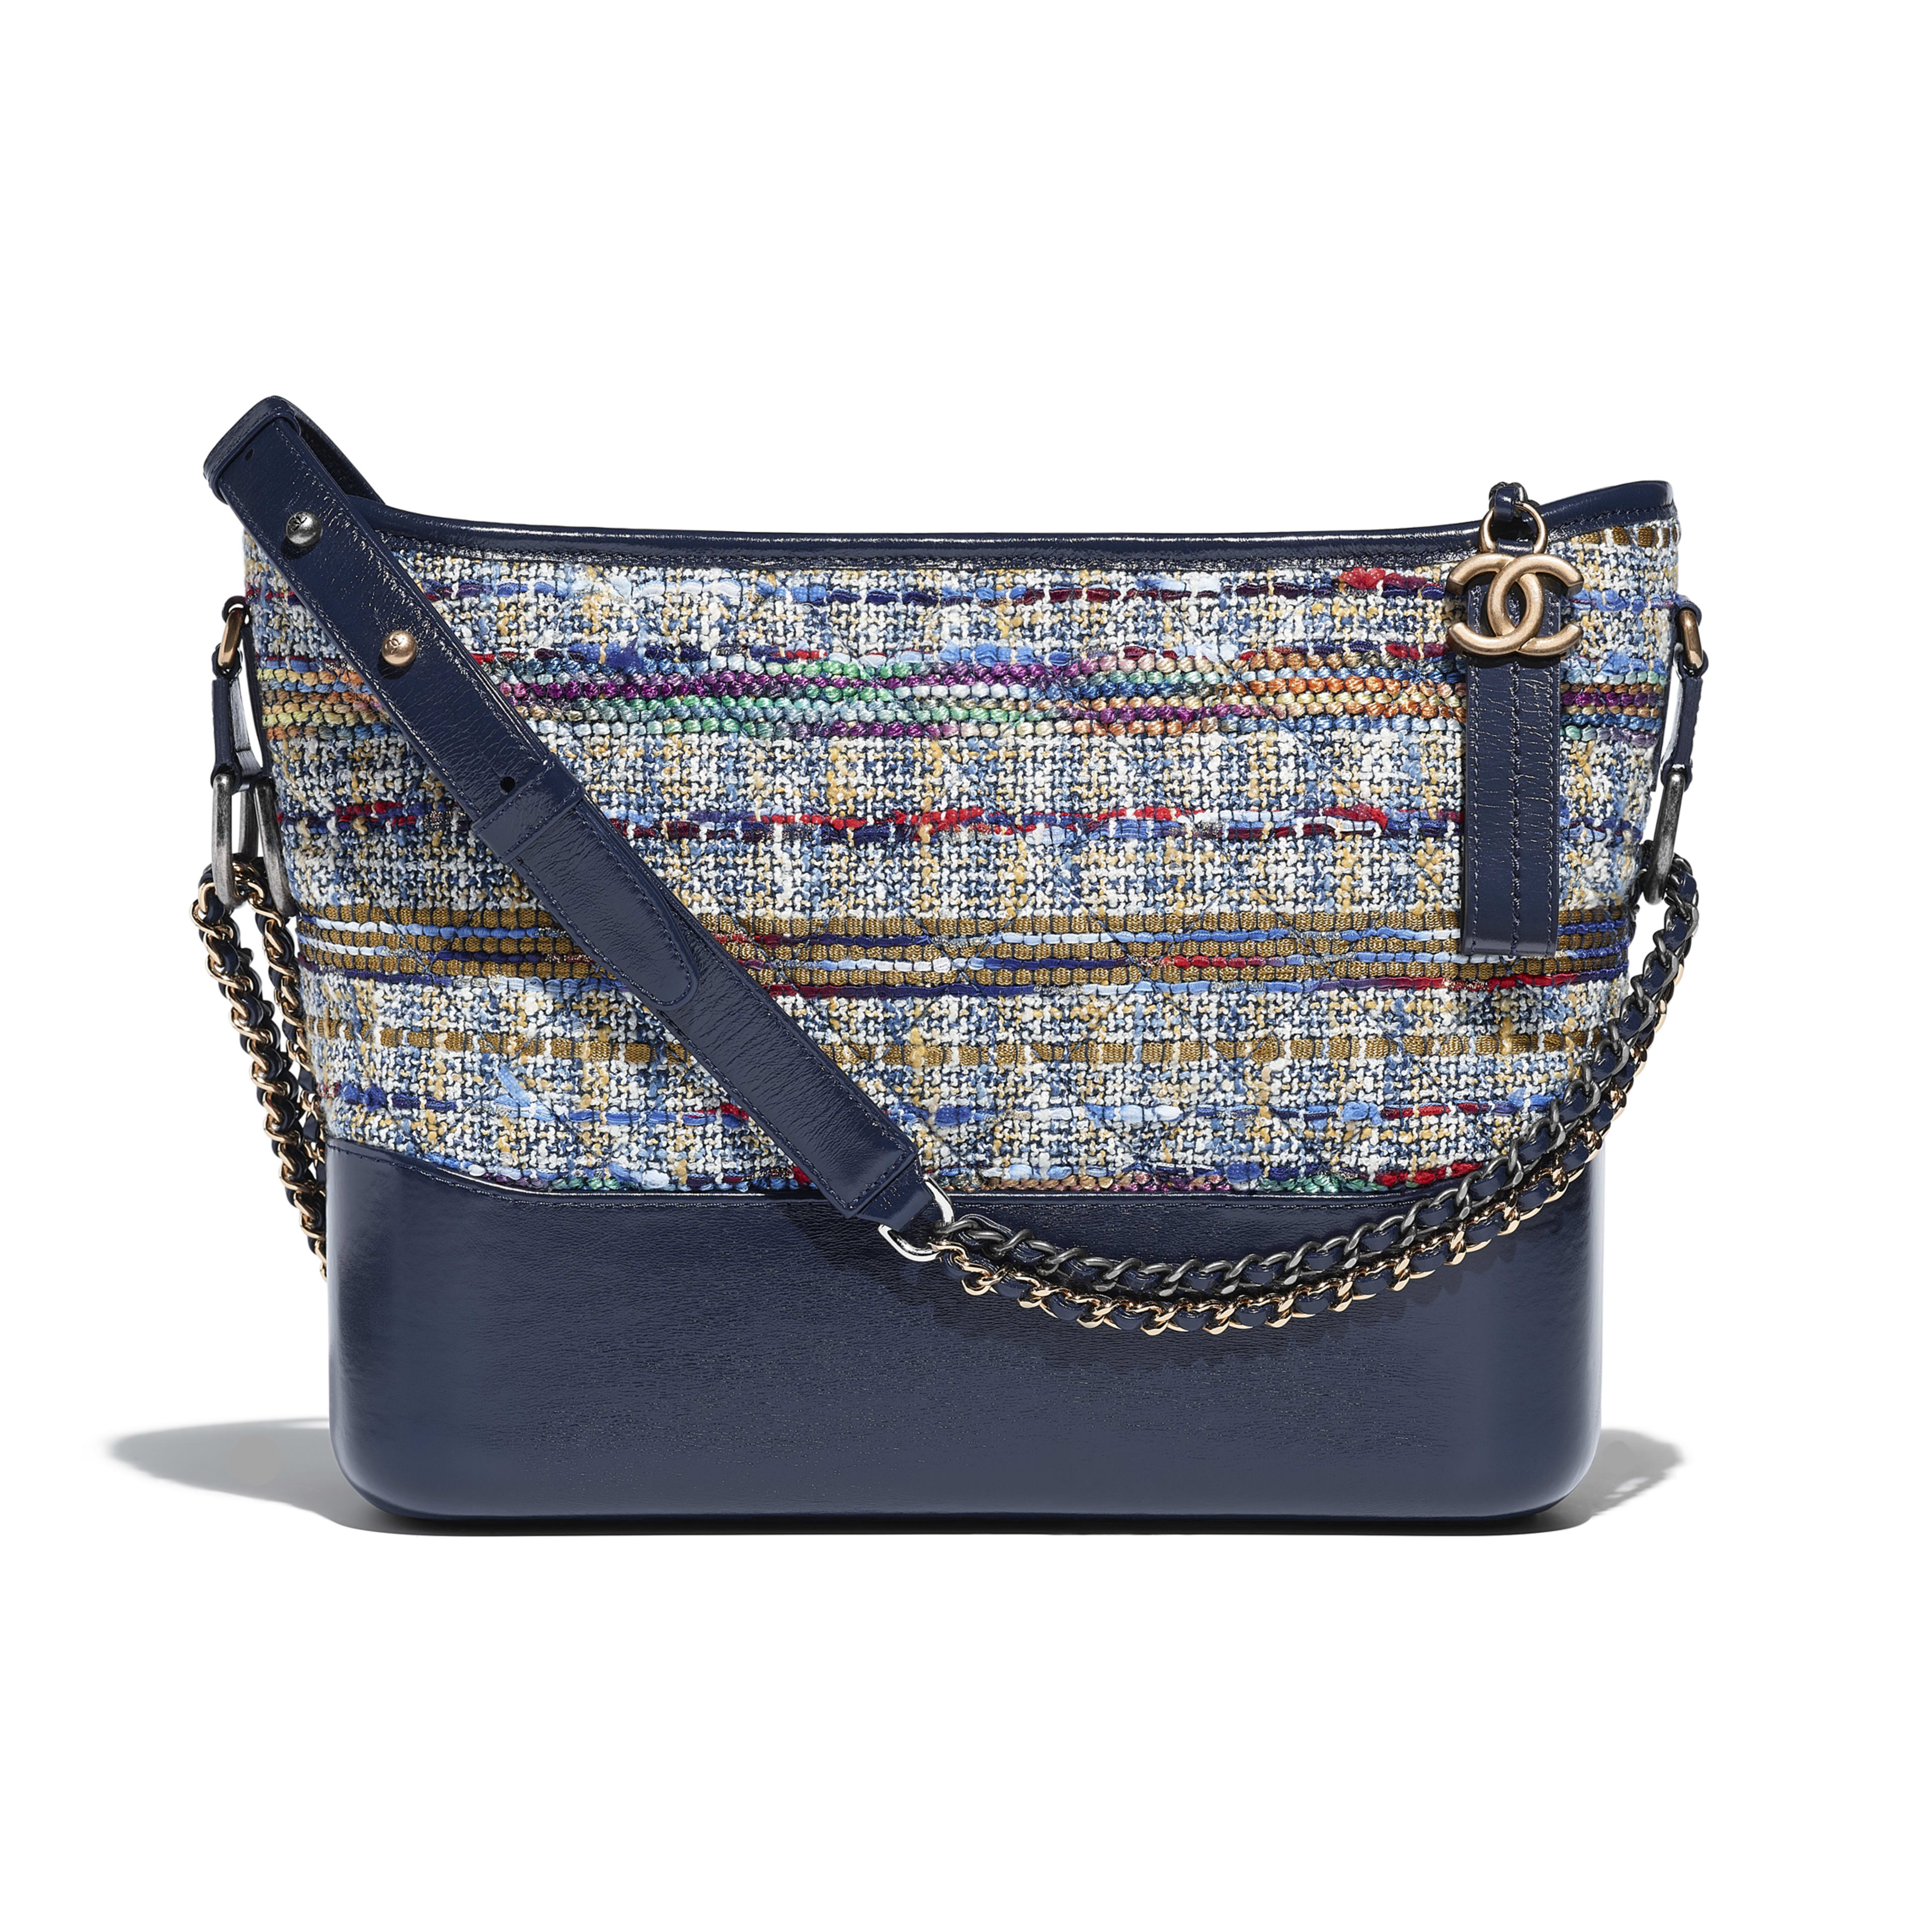 CHANEL'S GABRIELLE Hobo Bag Tweed, Calfskin, Silver-Tone & Gold-Tone Metal Blue, Gold, Red, White & Navy Blue -                                  view 1 - see full sized version